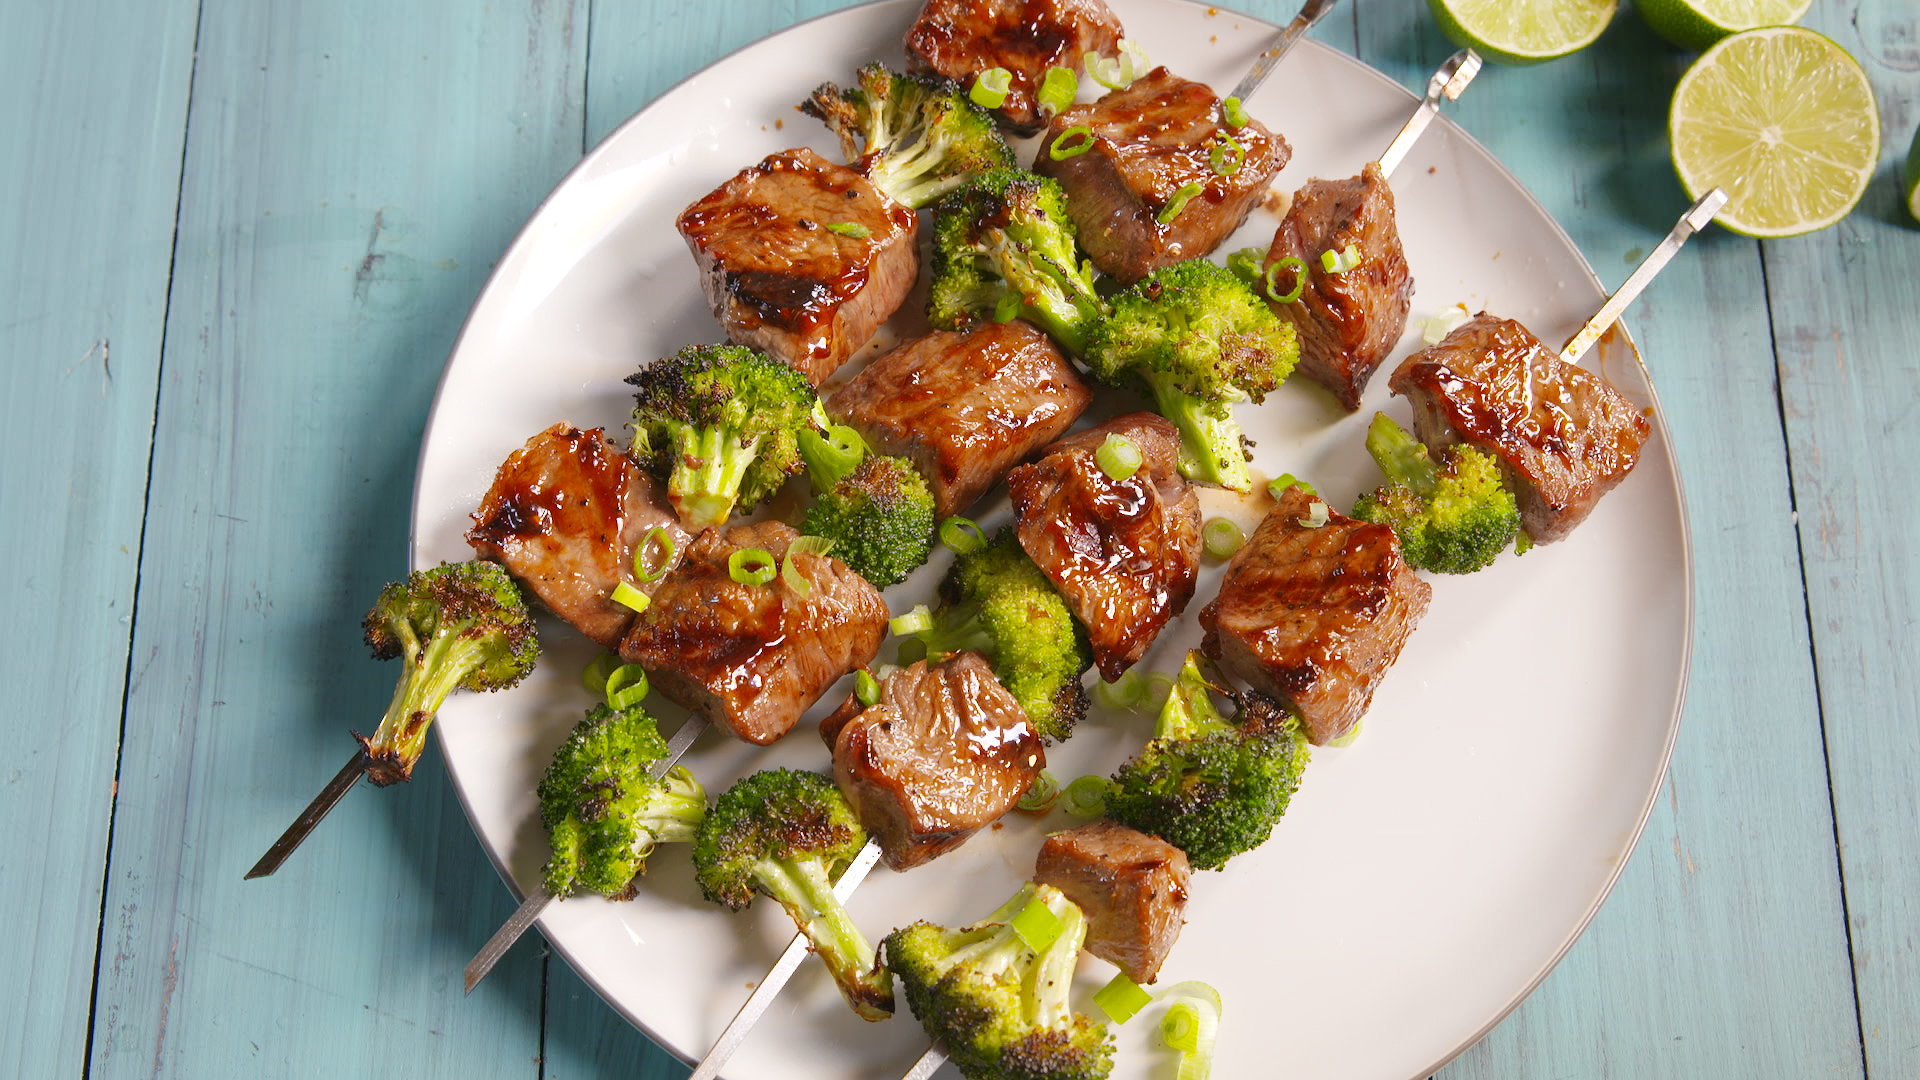 How to Make Beef and Broccoli Kebabs